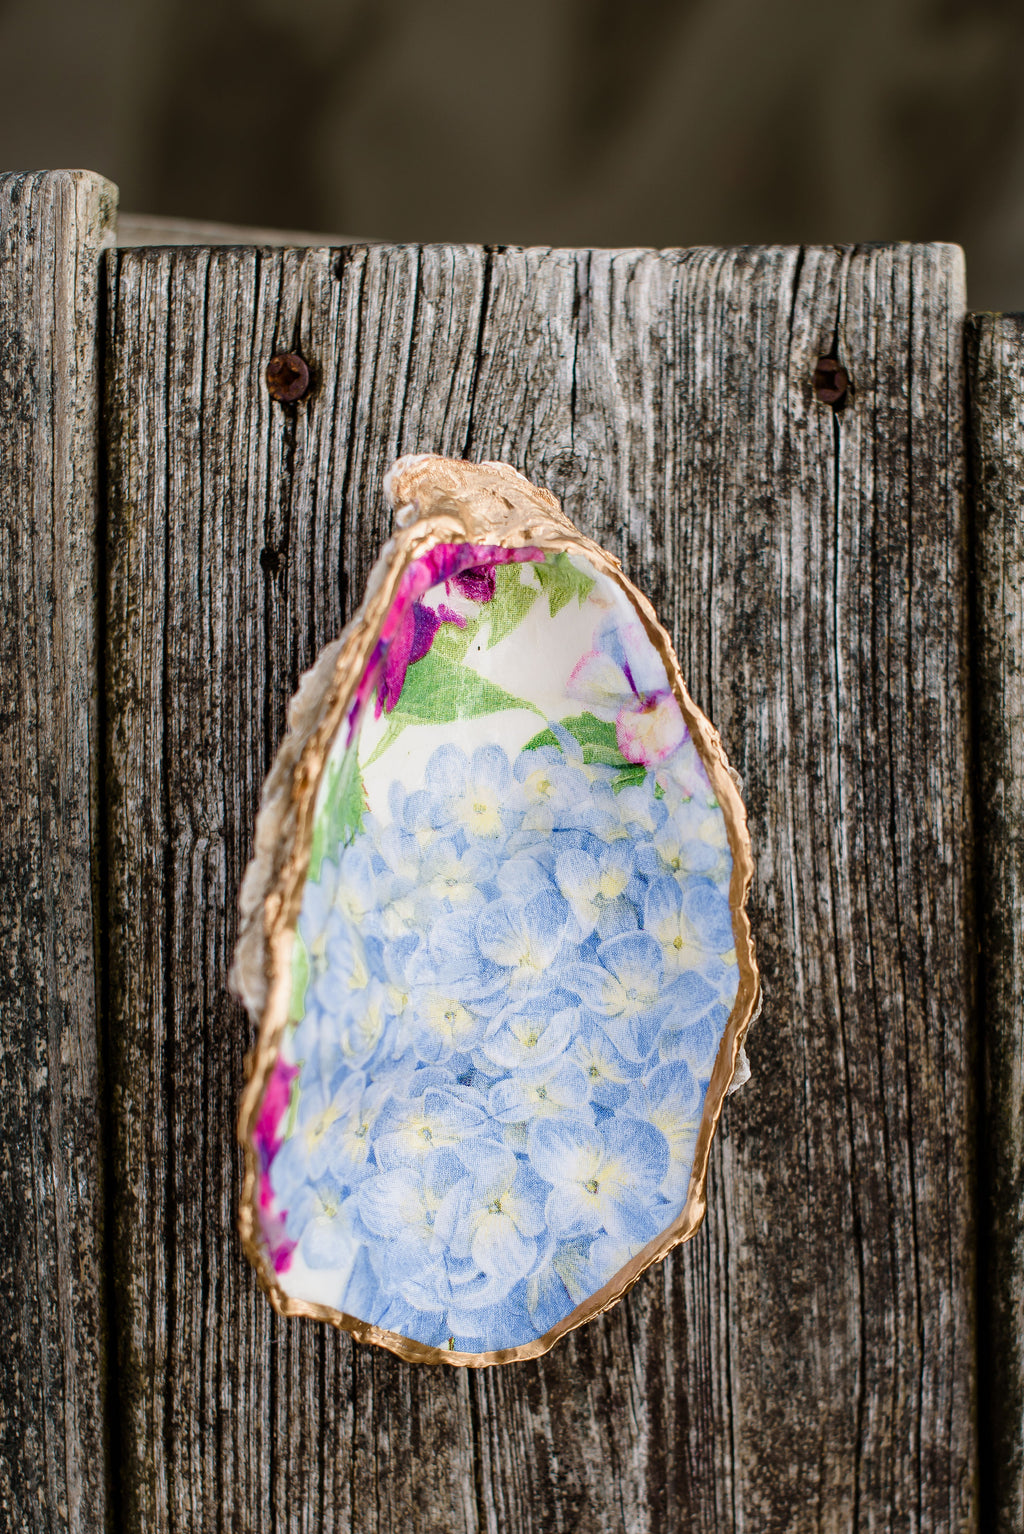 Classic blue hydrangea oyster shell